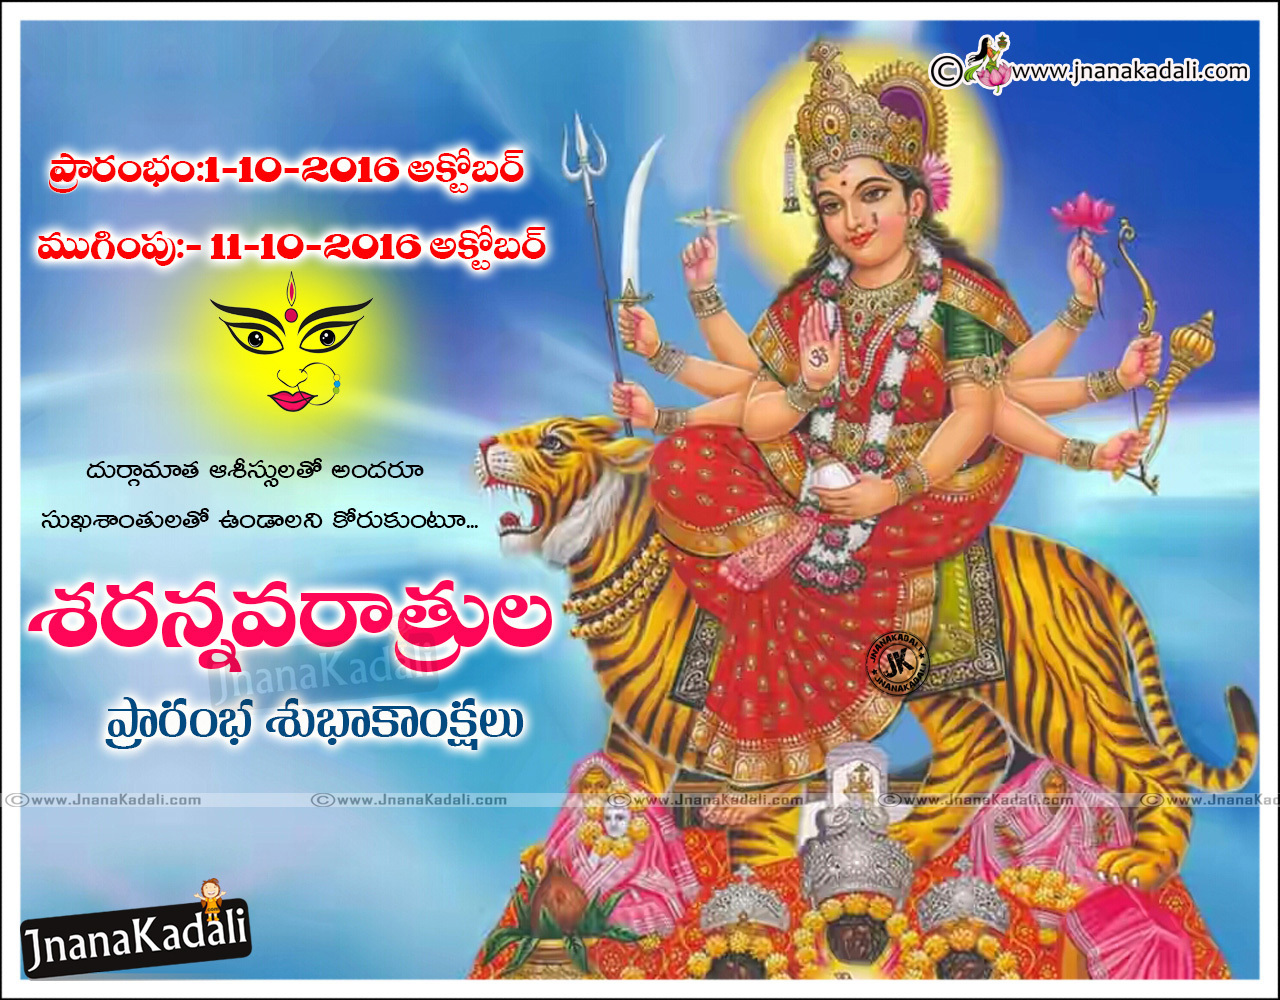 Happy navratri wishes quotes greetings shubhakankshalu images in here is devinavaratri greetings quotes messages information shlokam kavitalu in telugudevi navaratri information greetings kristyandbryce Choice Image